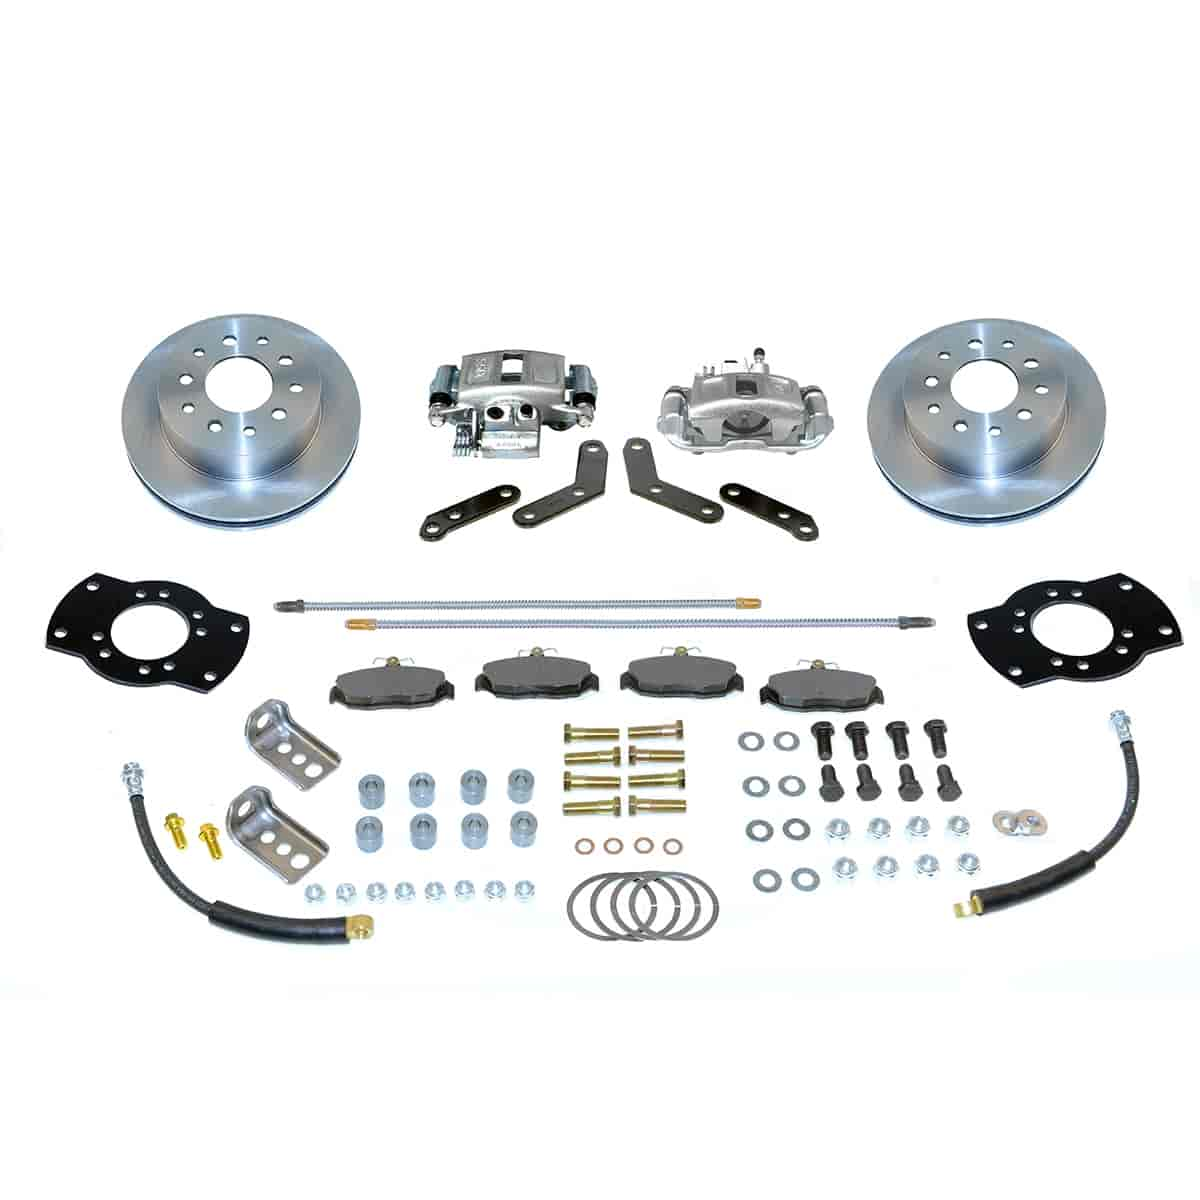 Stainless Steel Brakes A125-1 - Stainless Steel Brakes Single Piston Rear Disc Brake Conversion Kit